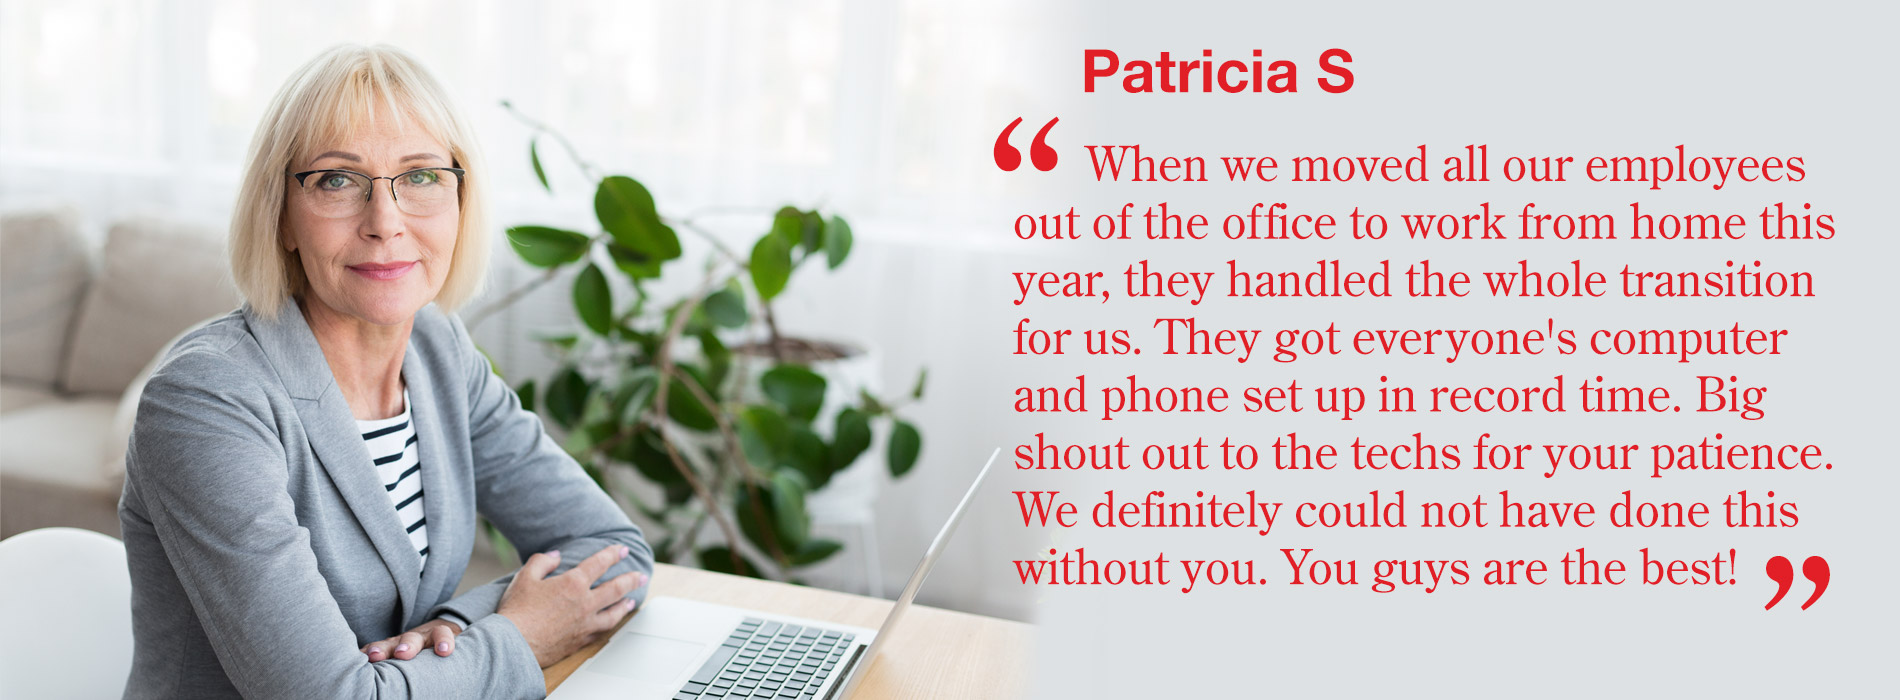 Patricia S - When we moved all our employees out of the office to work from home this year, they handled the whole transition for us. They got everyone's computer and phone set up in record time. Big shout out to the techs for your patience. We definitely could not have done this without you. You guys are the best!